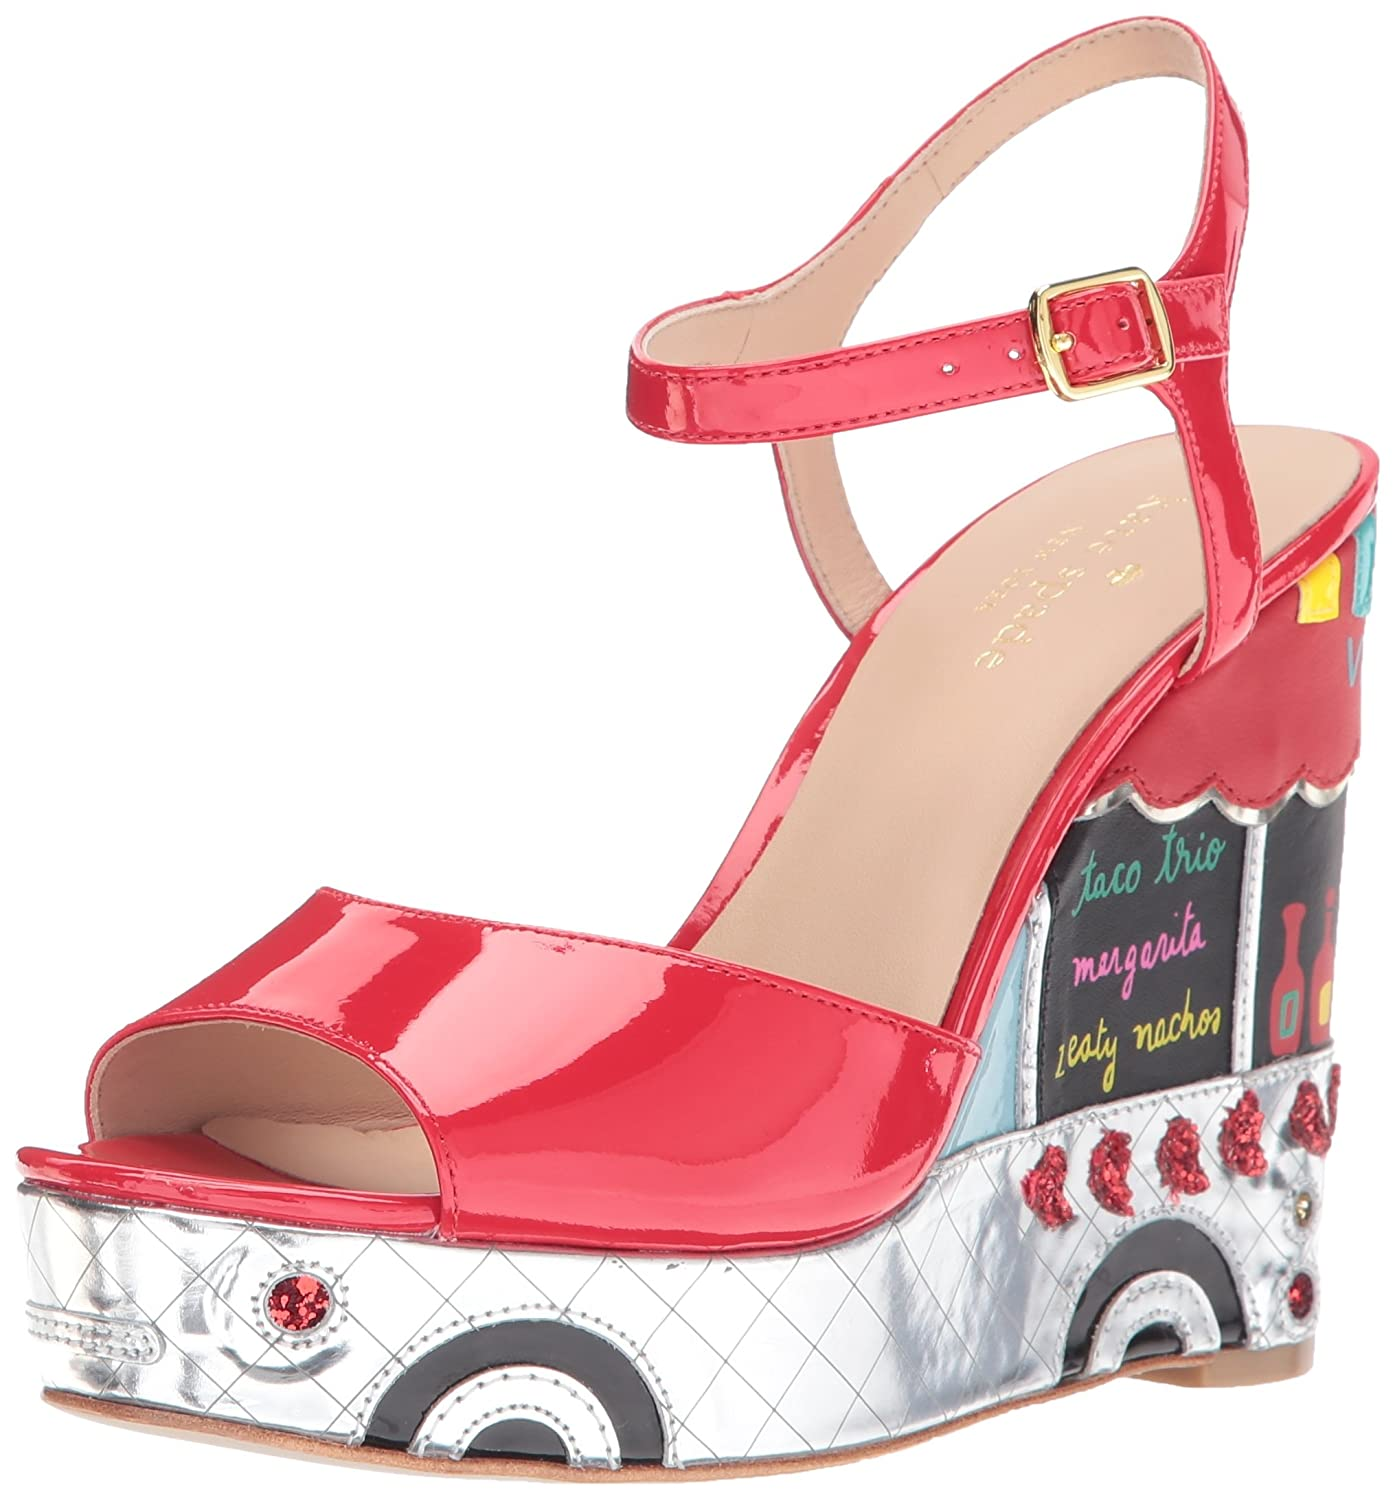 Kate Spade New York Women's Red Dora Margarita Wedge Sandals - DeluxeAdultCostumes.com